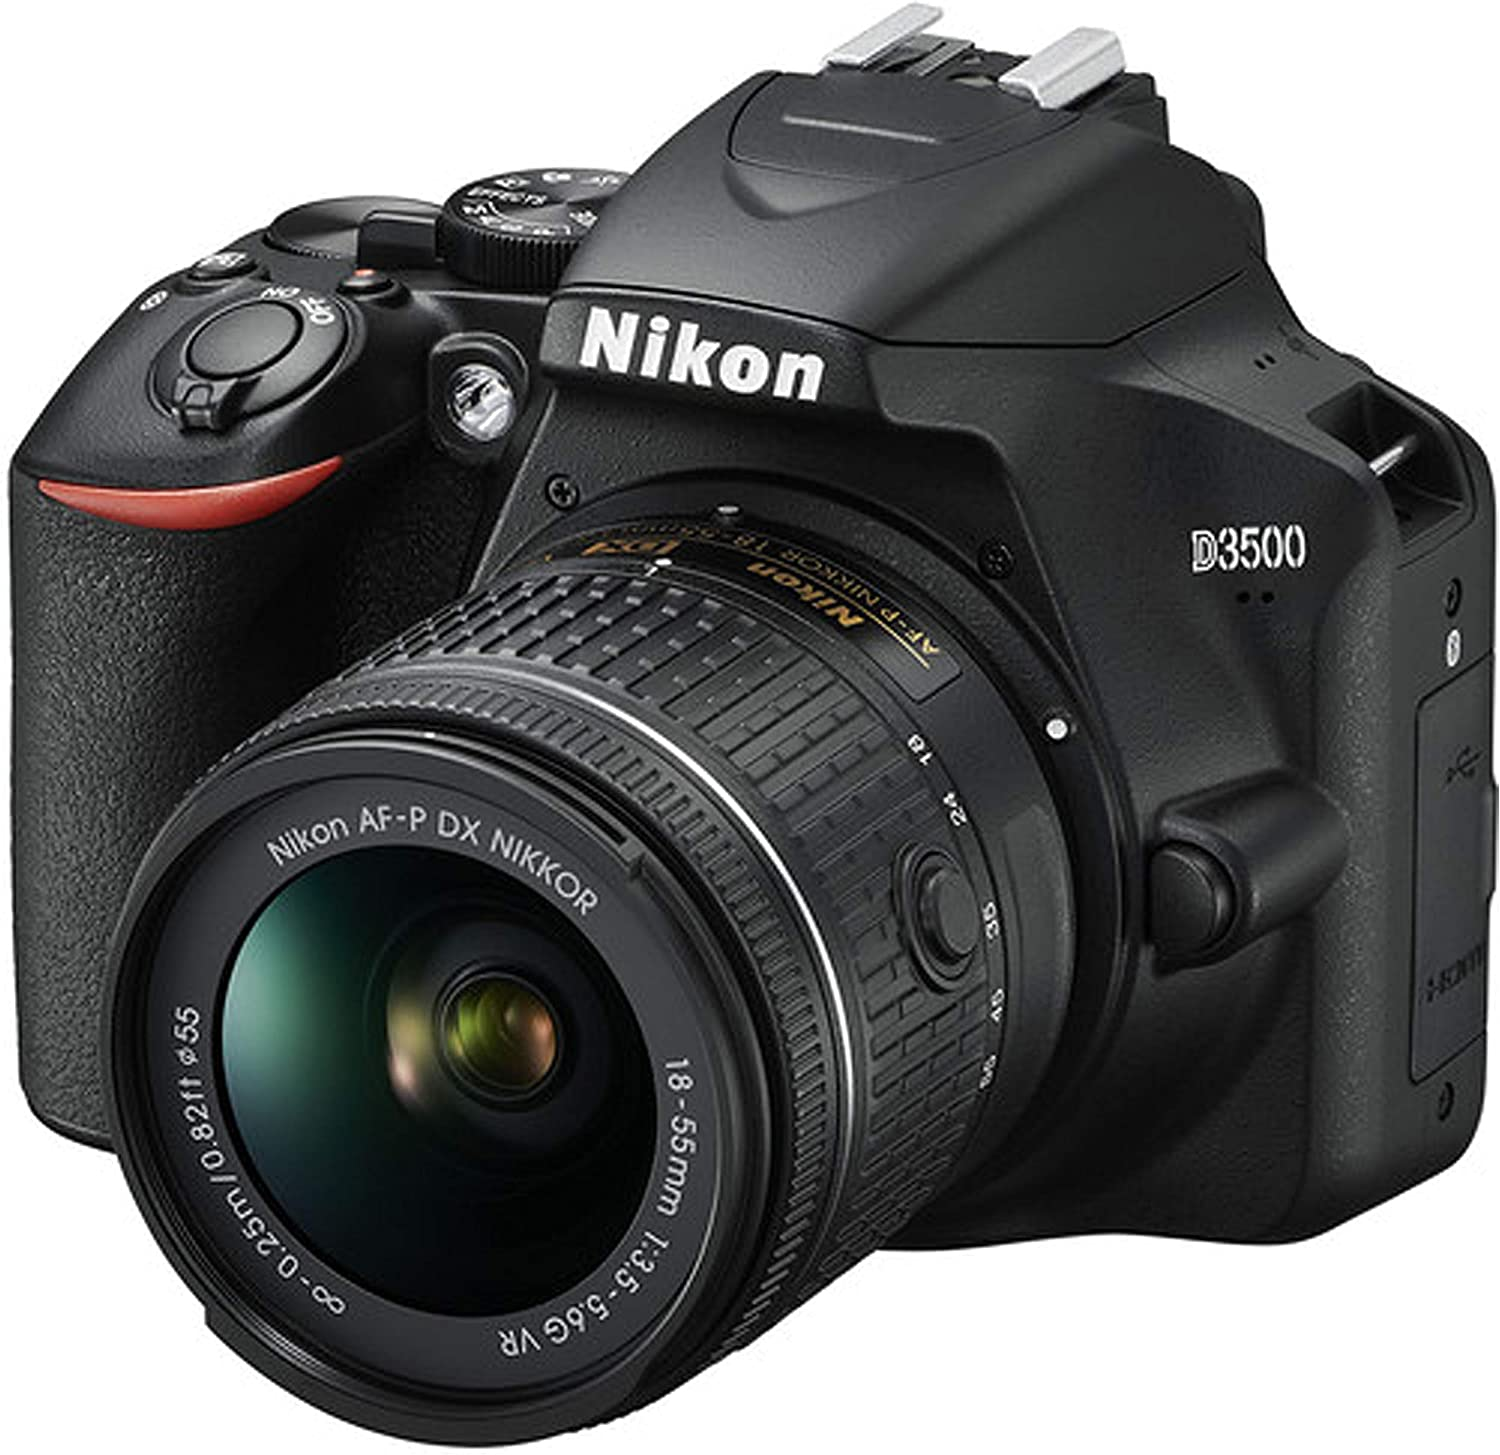 Best Filmmaking Camera - Nikon D3500